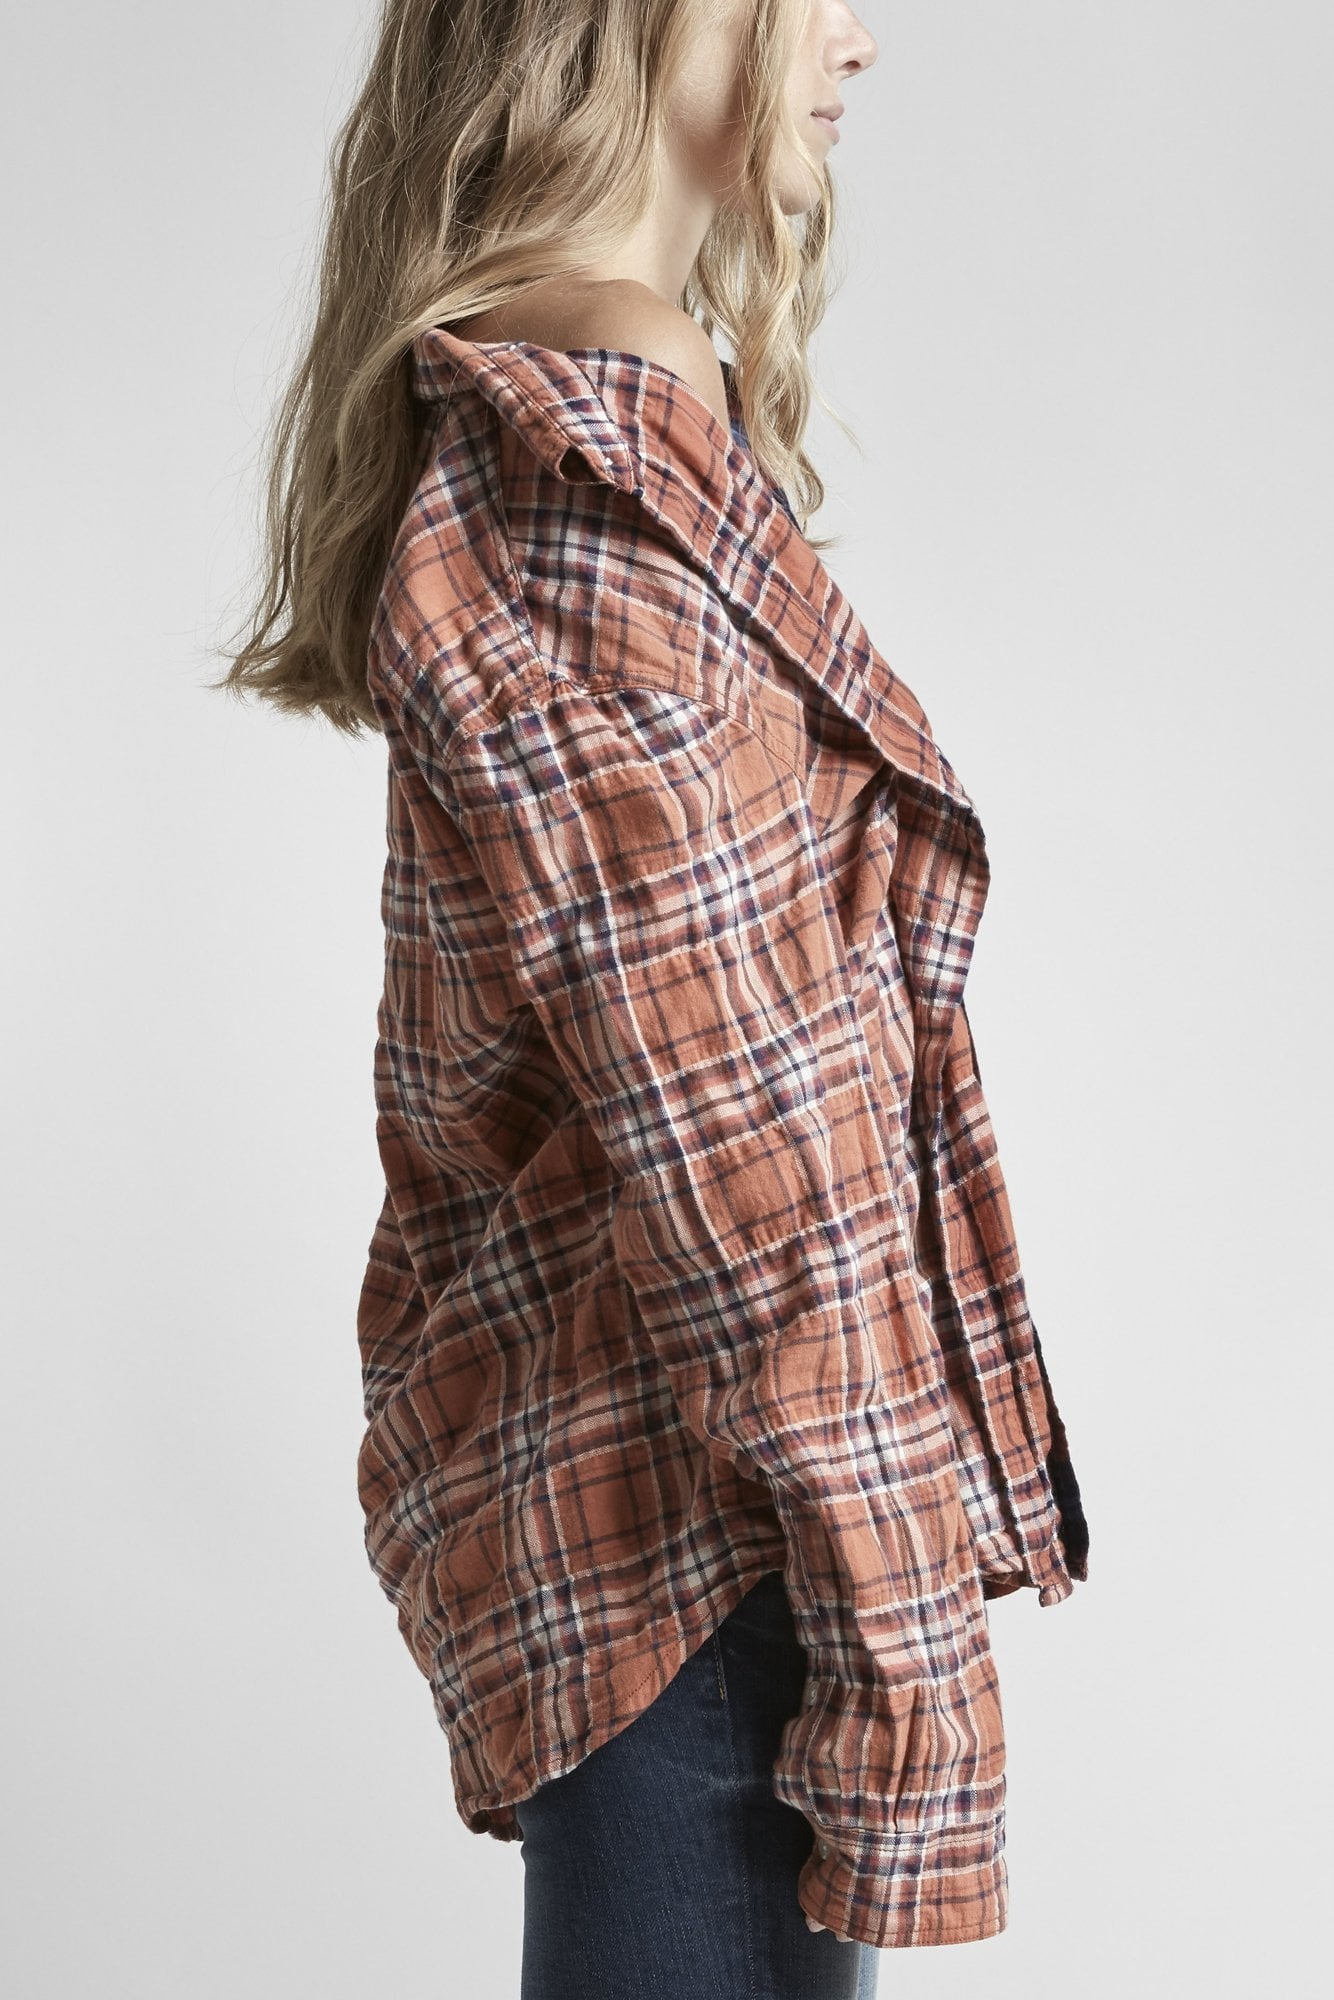 Off-Shoulder Plaid Combo Shirt - Maroon/Rust Plaid